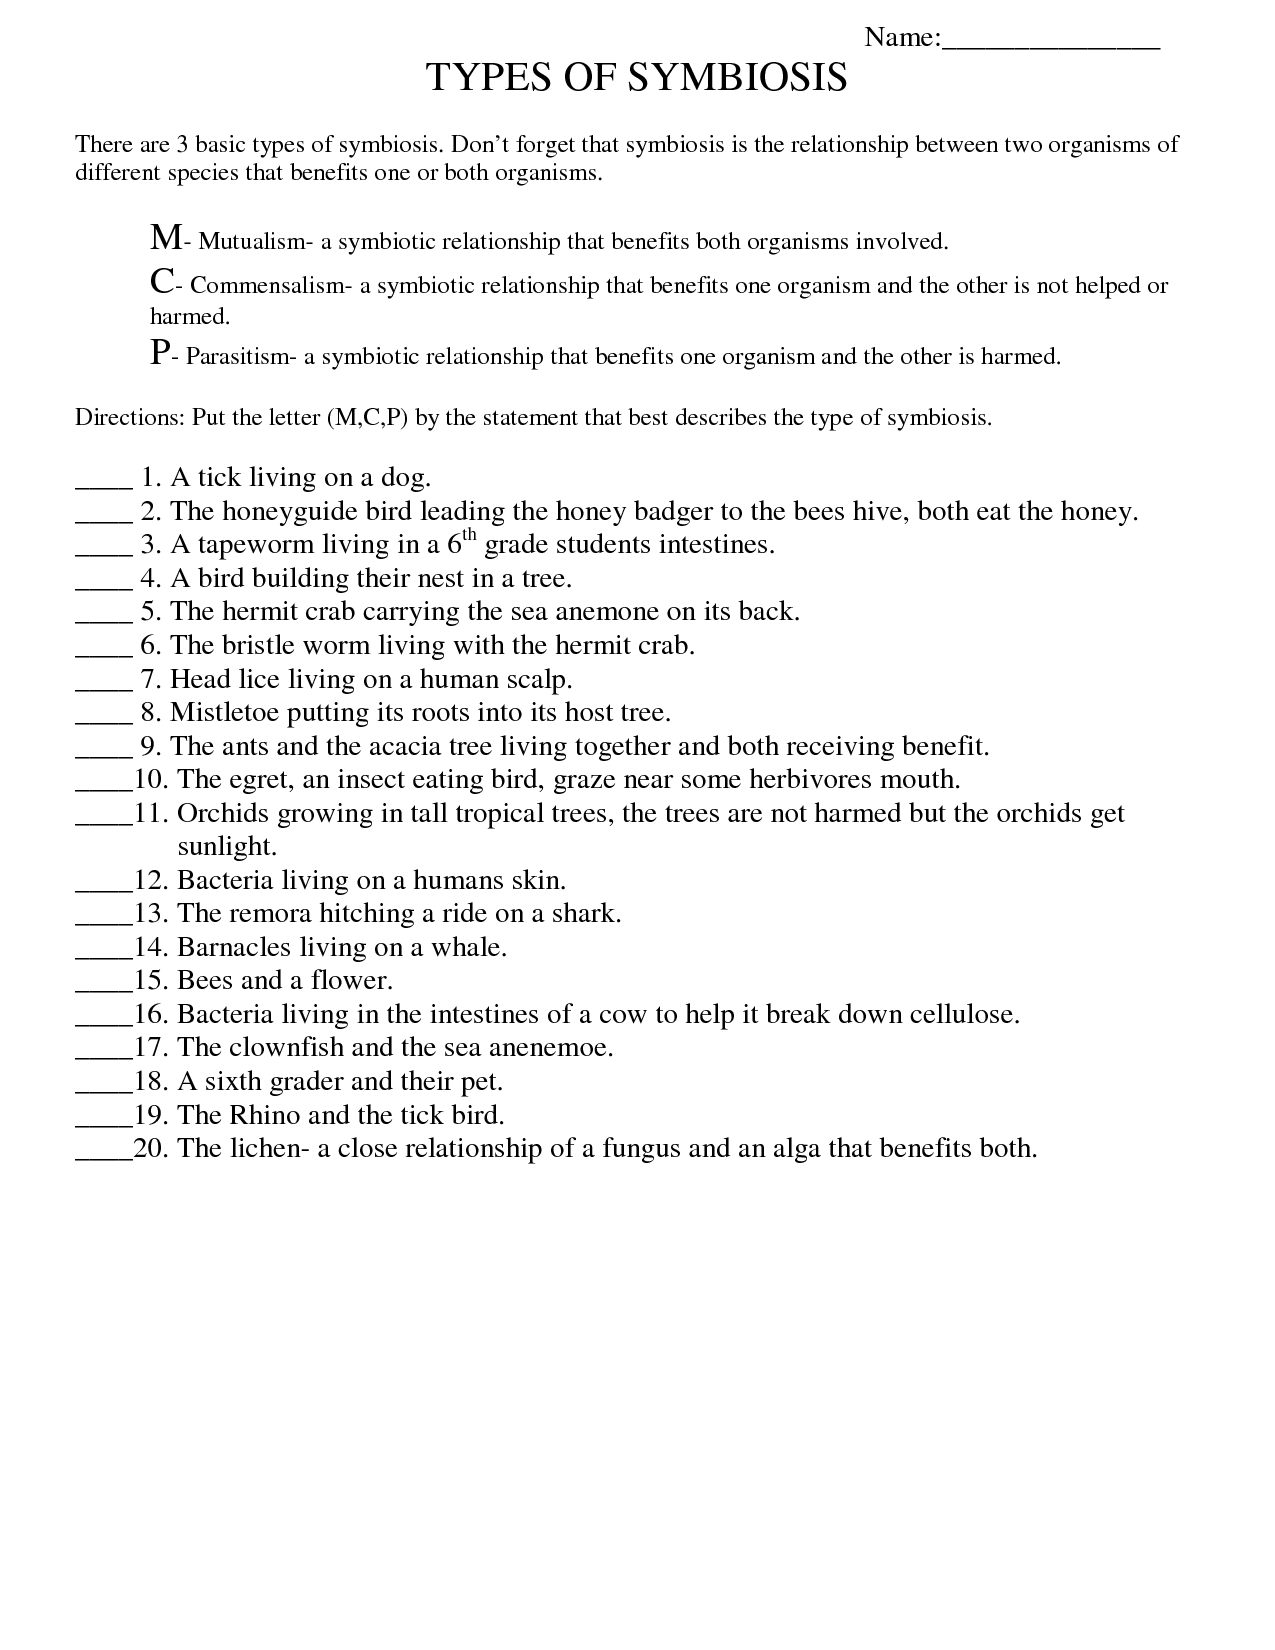 Symbiosis Worksheet: Free Printable Worksheets On High School Bio | Free Printable High School Worksheets